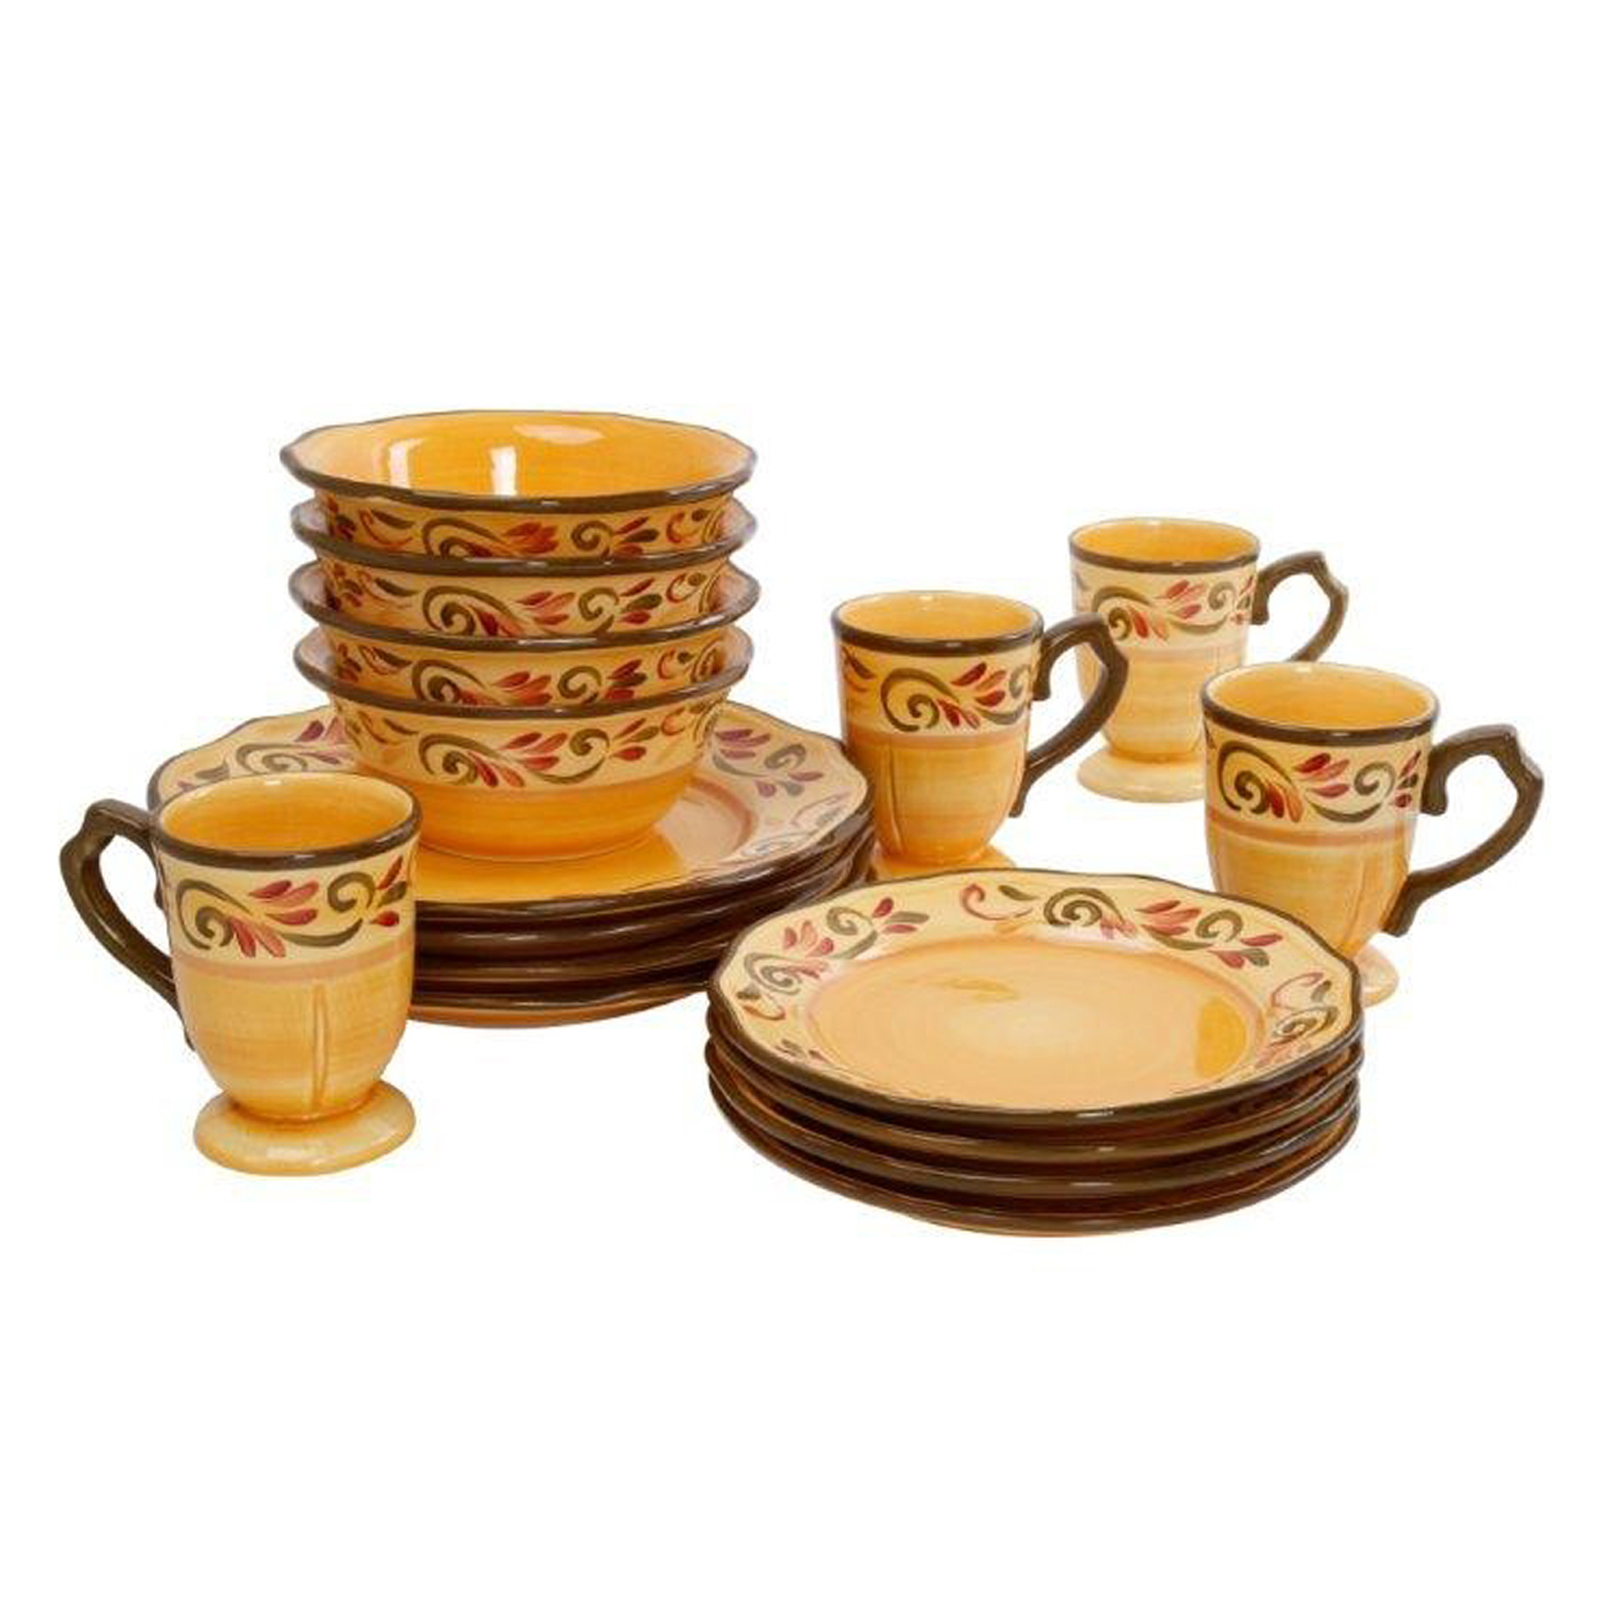 Amazon Dinnerware | Stoneware Dinnerware Sets | Target Dishware